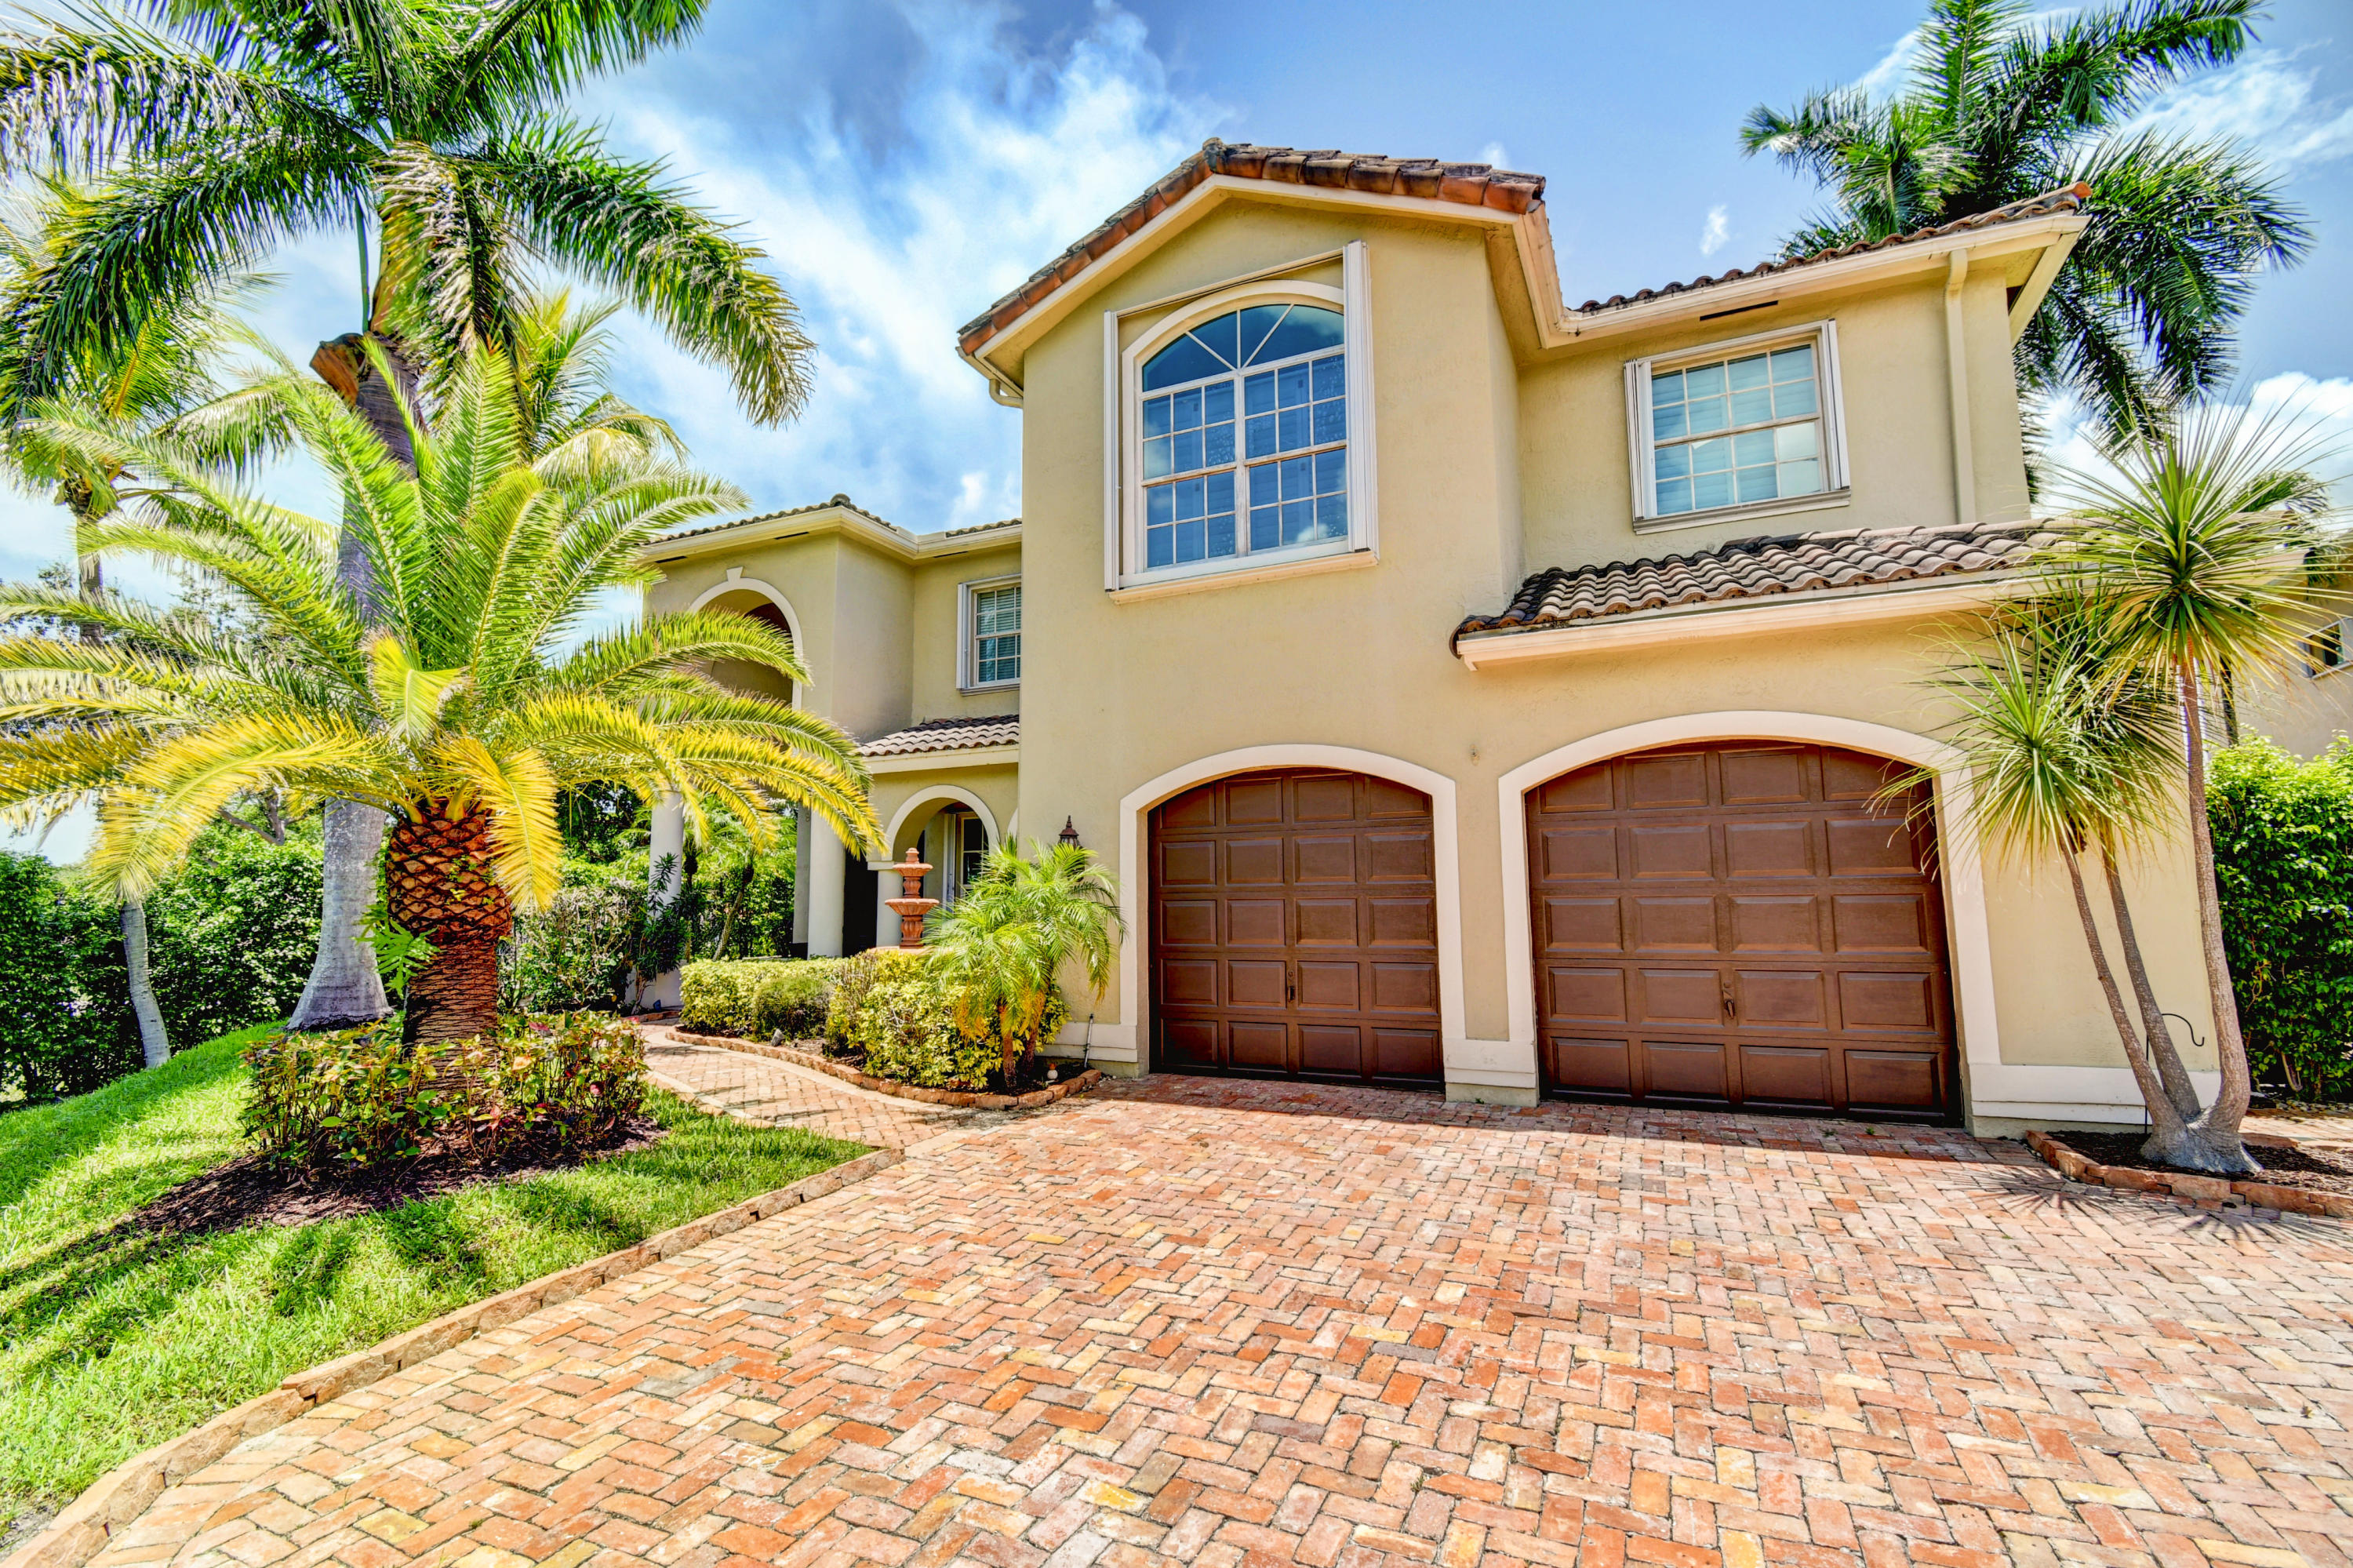 BOCA EAST ESTATES REAL ESTATE